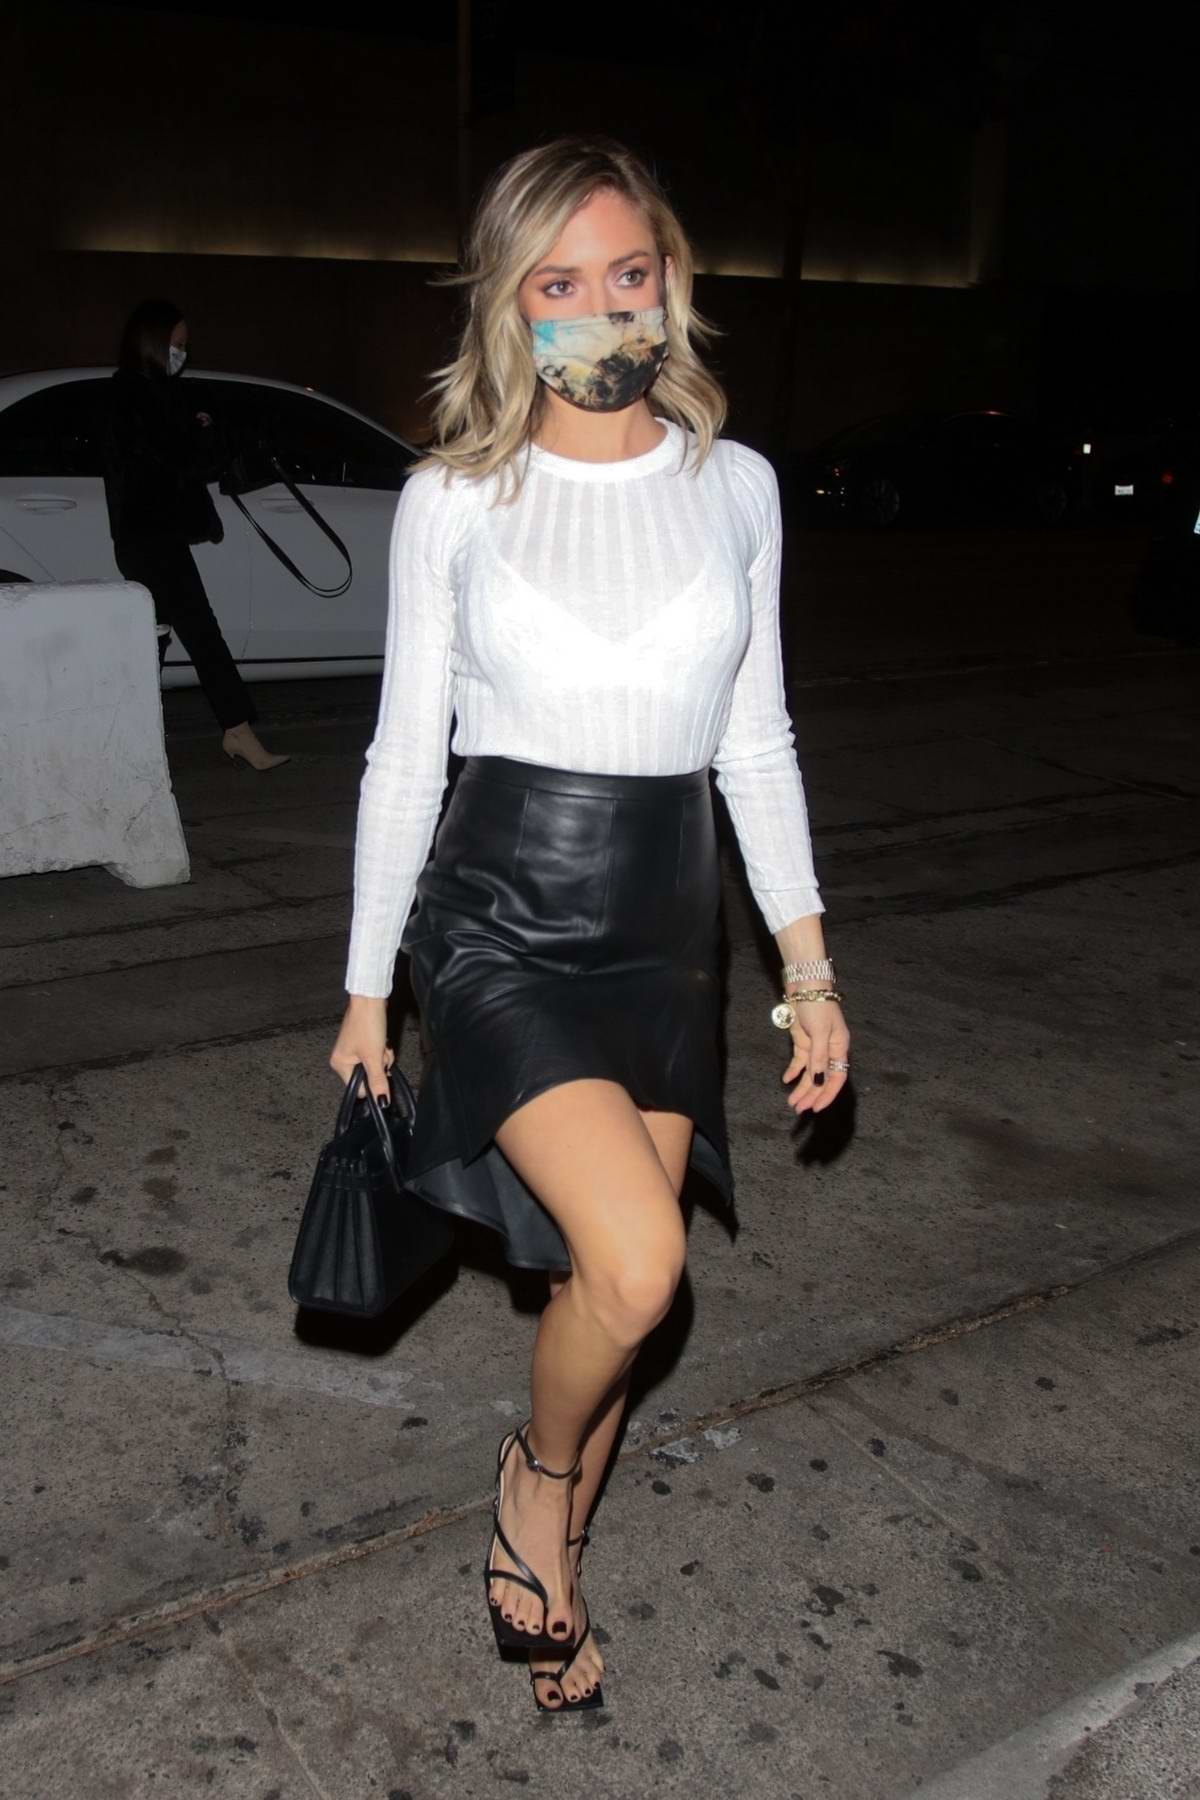 Kristin Cavallari dons a white top and black leather mini skirt while out for dinner at Craig's in West Hollywood, California